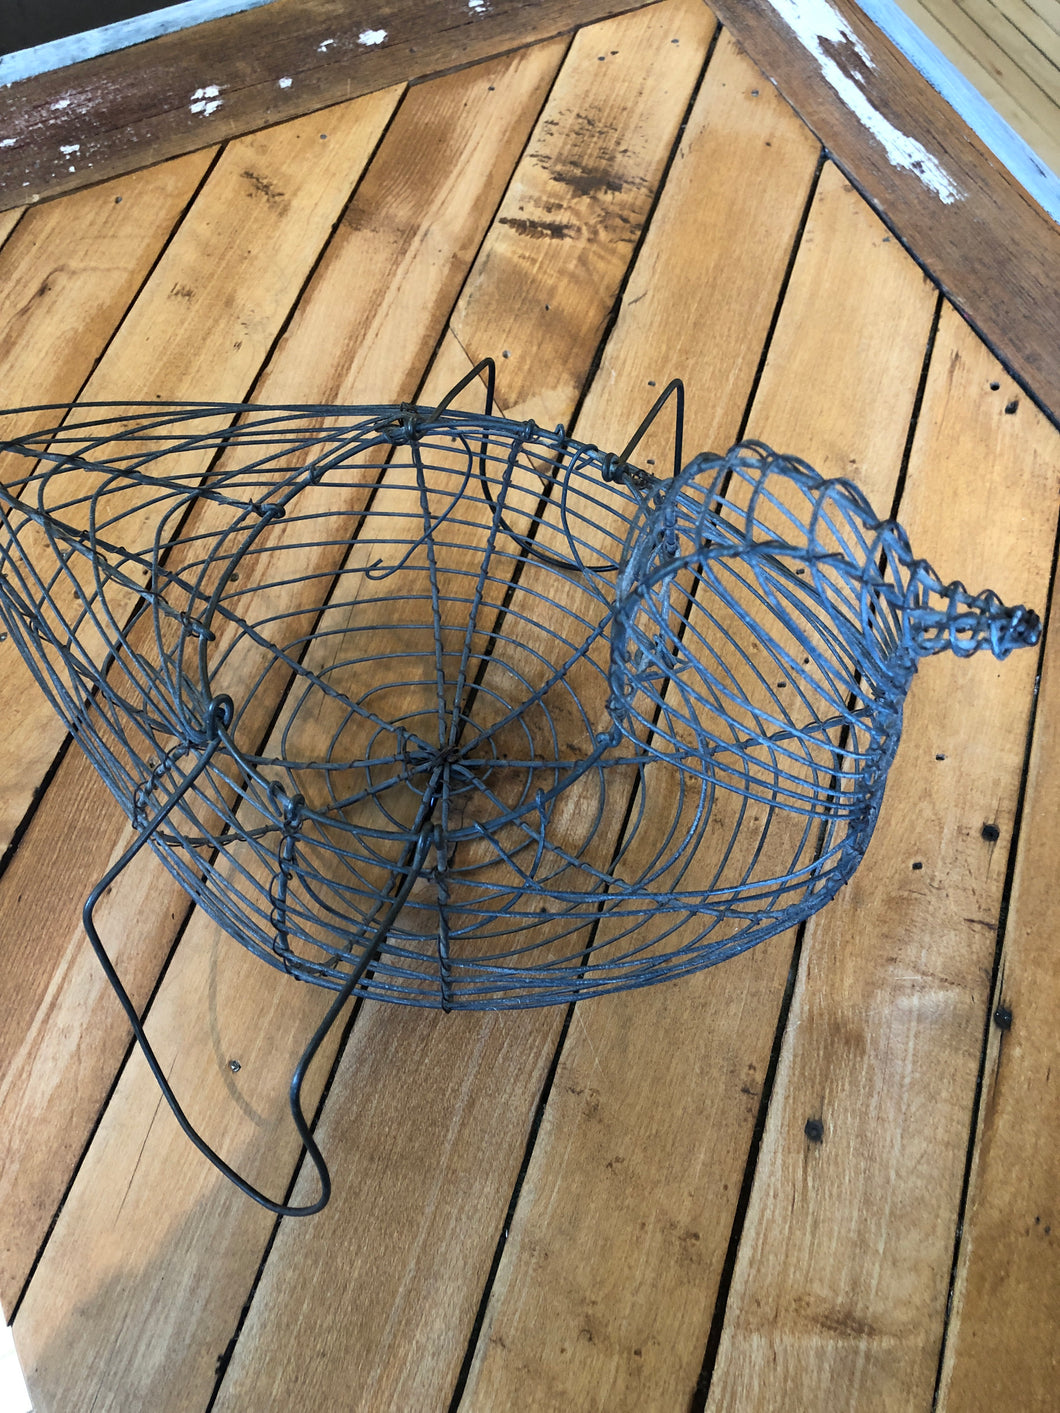 Vintage Wire Chicken Basket